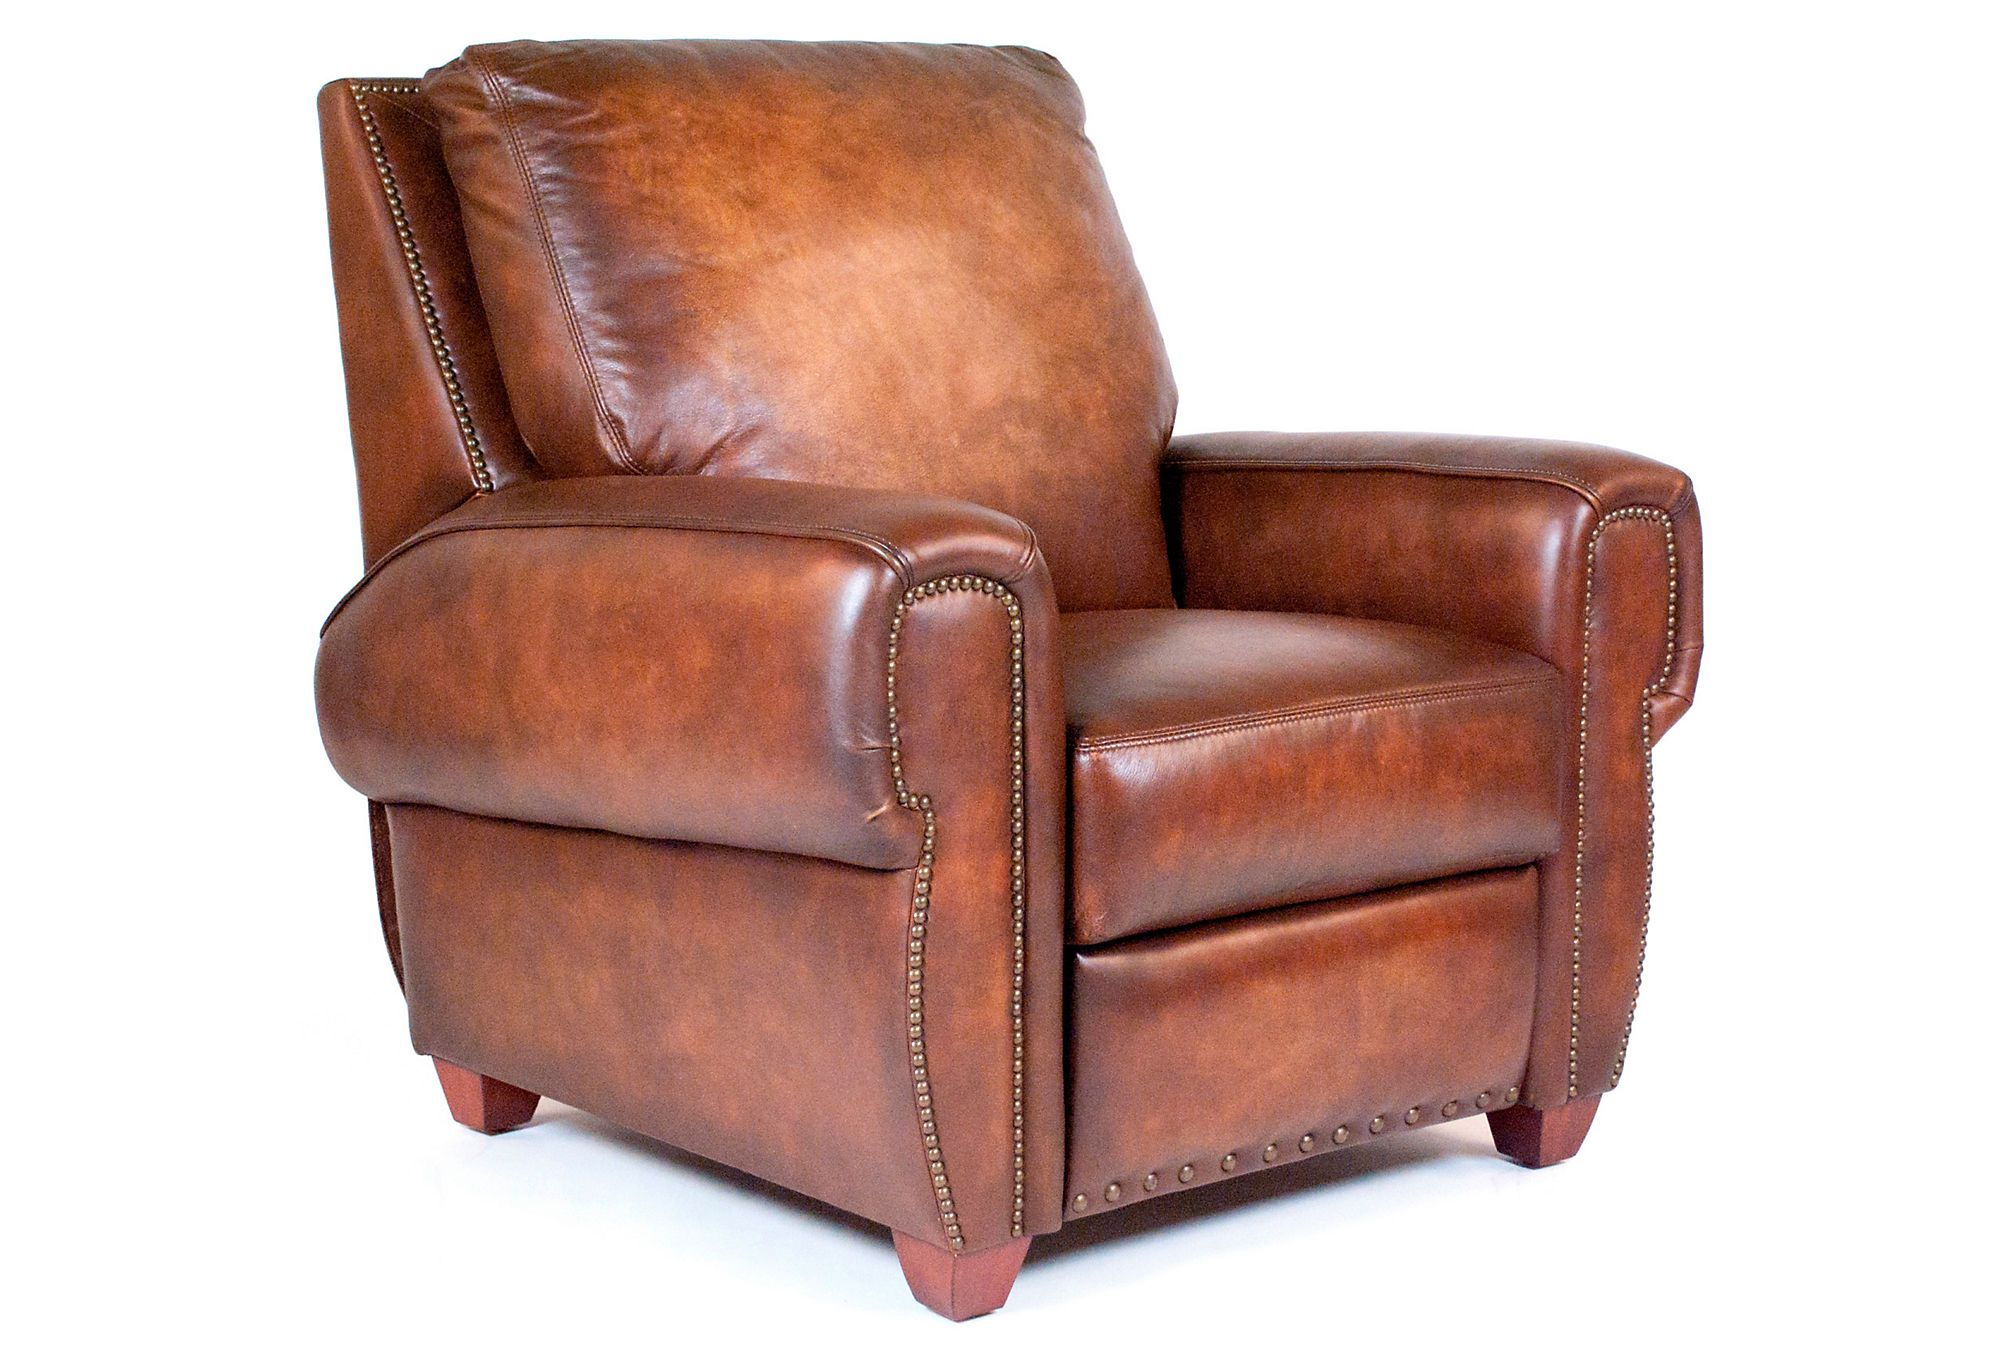 Lane Leather Office Chair Brown Revolving Base Online Auckland Recliner On One Kings Today Study